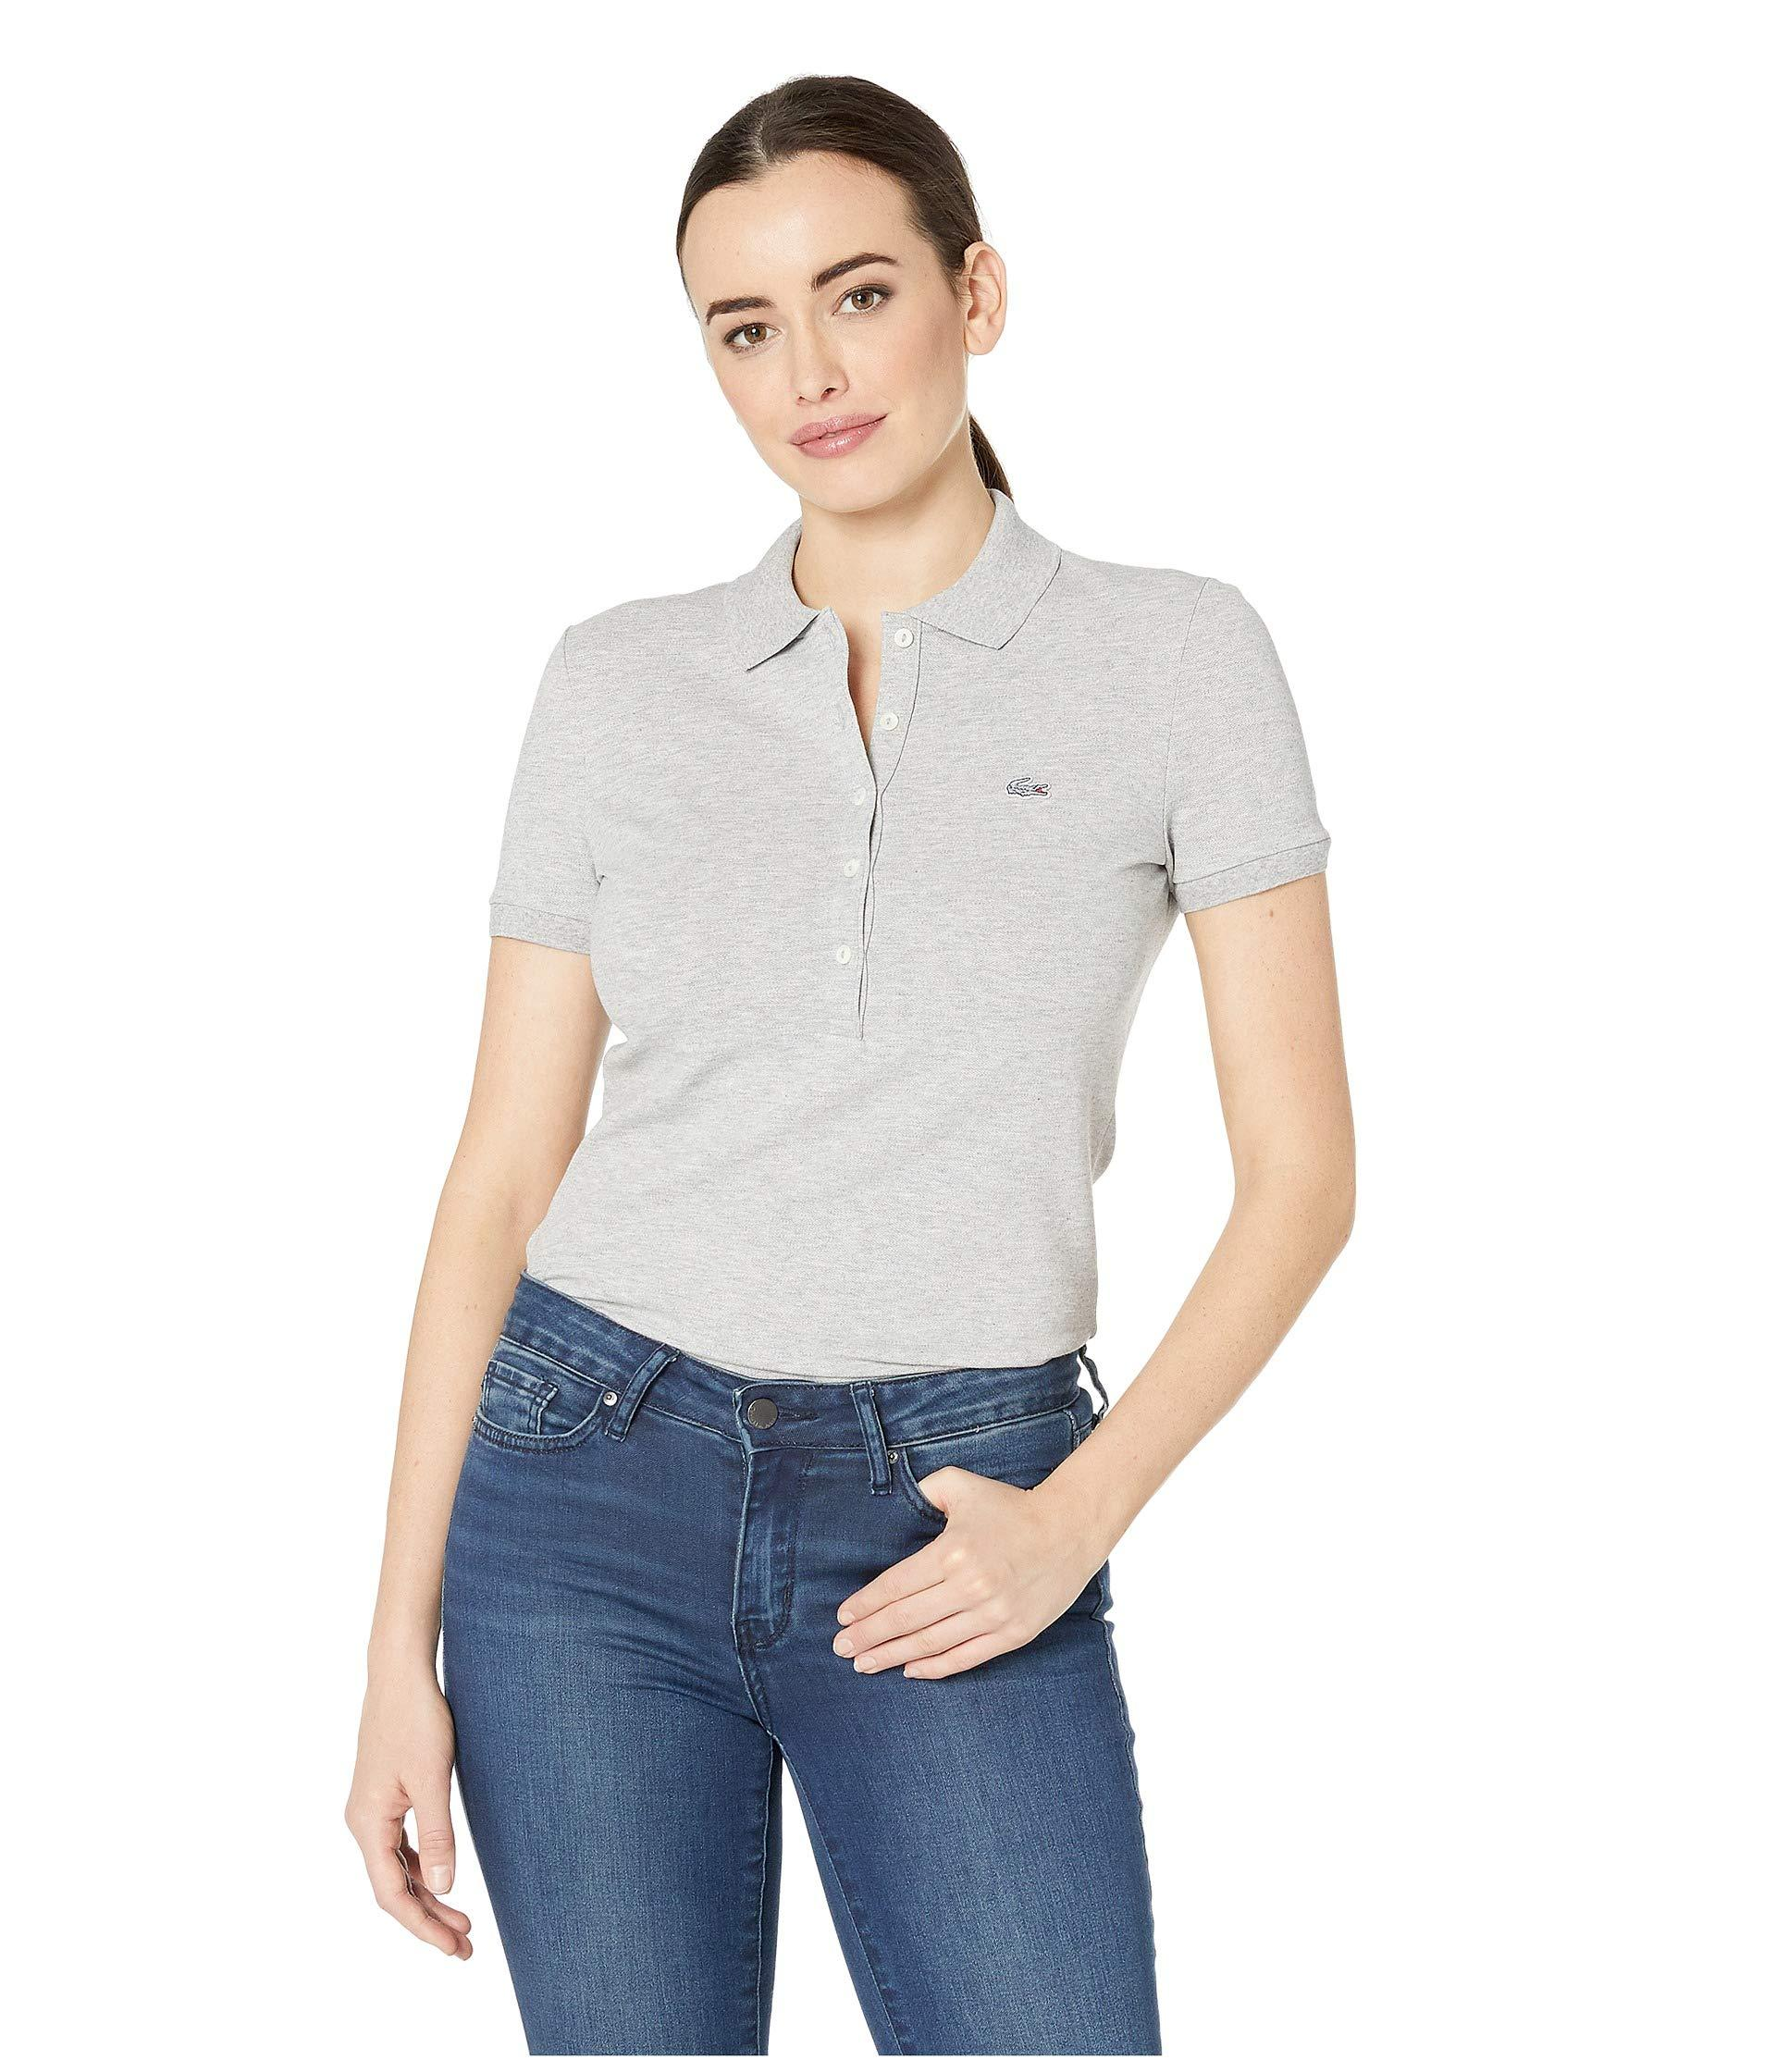 e8662dcade Lyst - Lacoste Classic Short Sleeve Slim Fit Stretch Pique Polo ...